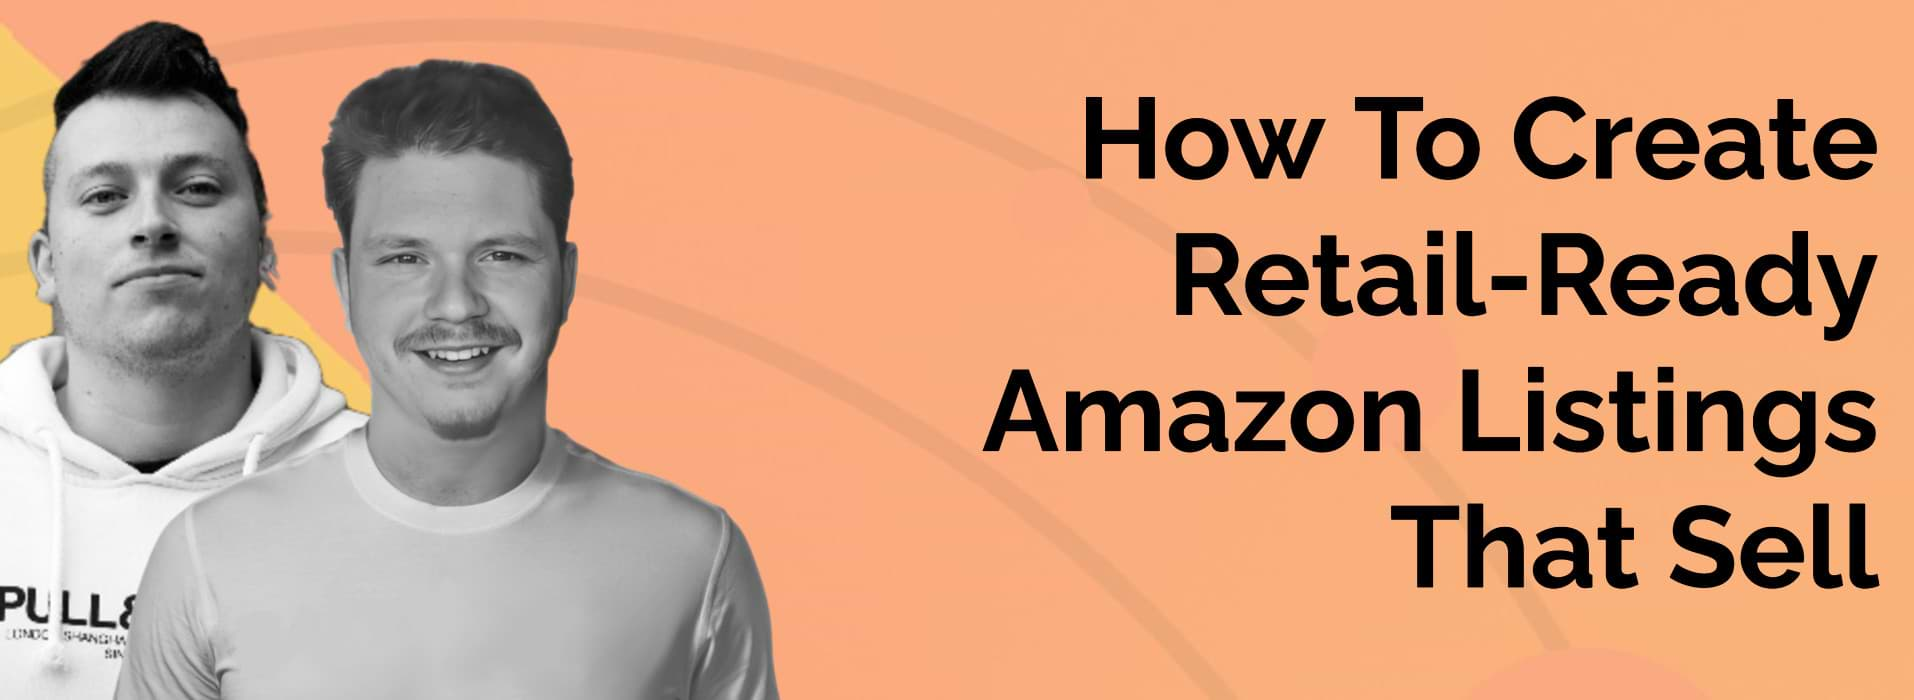 How To Create Retail-Ready Amazon Listings That Sell